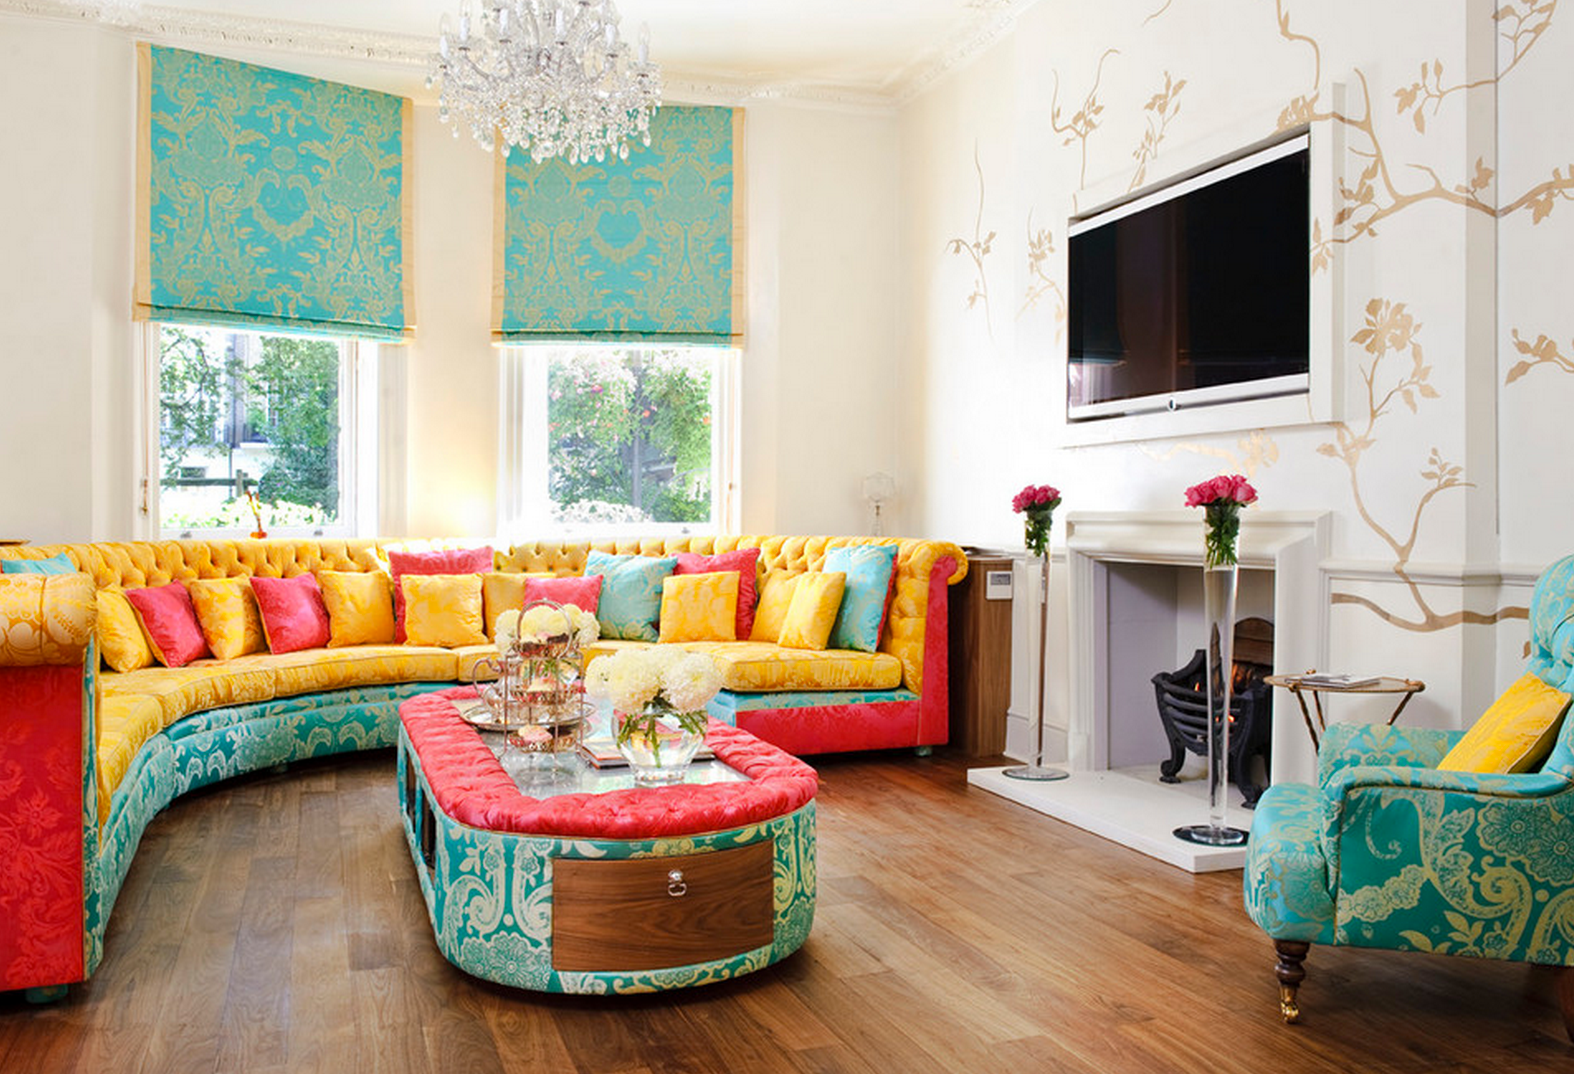 Design Living Room with Bright Yellow Arm Chairs